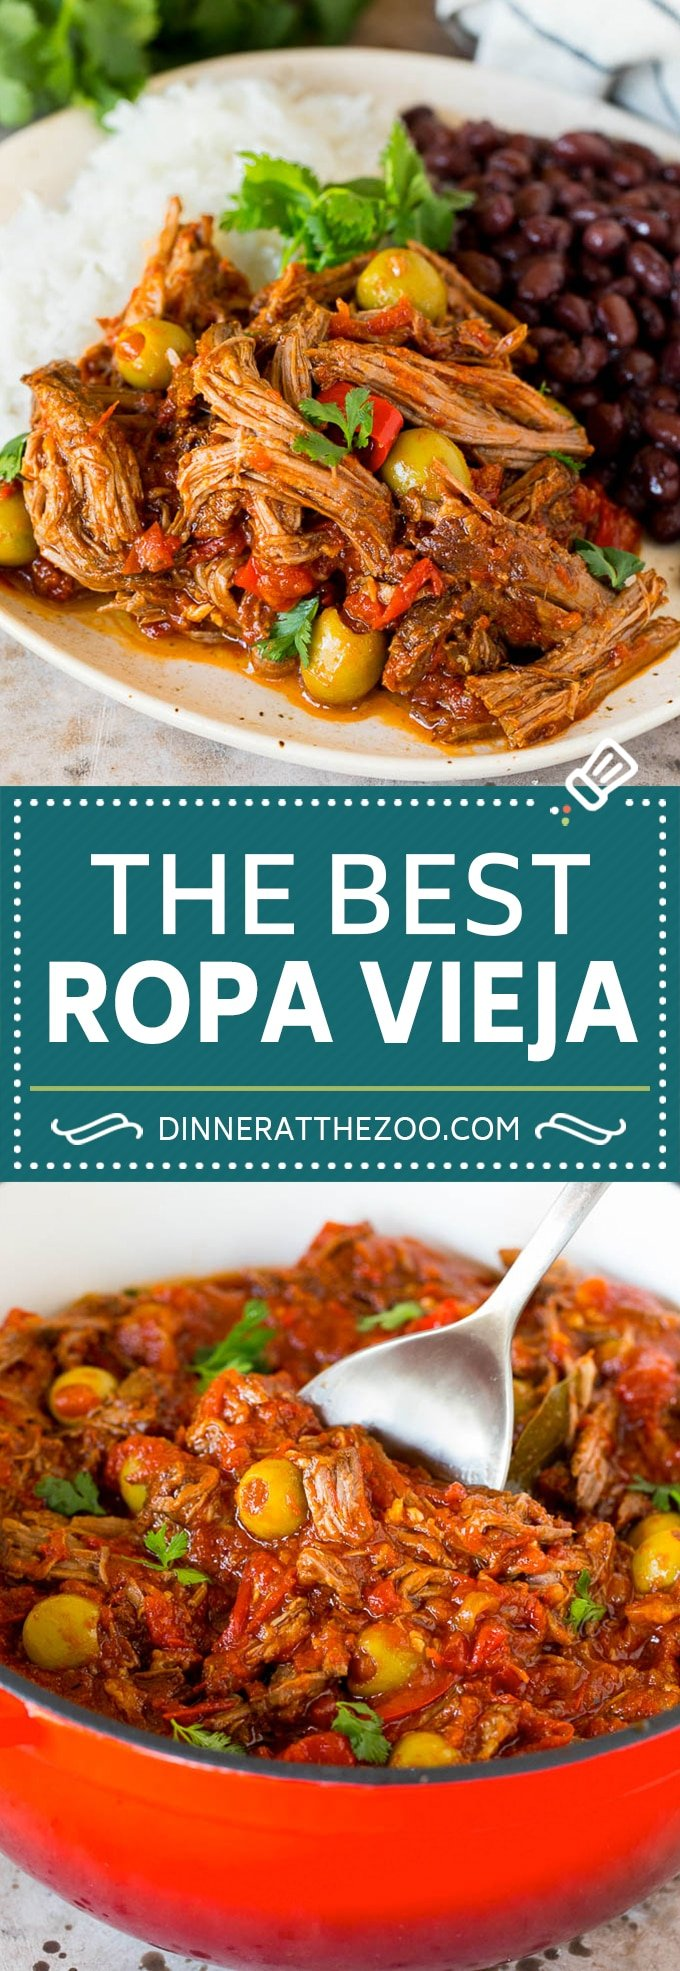 This ropa vieja recipe is a traditional dish of beef roast that's simmered with tomatoes and seasonings until tender, then shredded and served with olives.